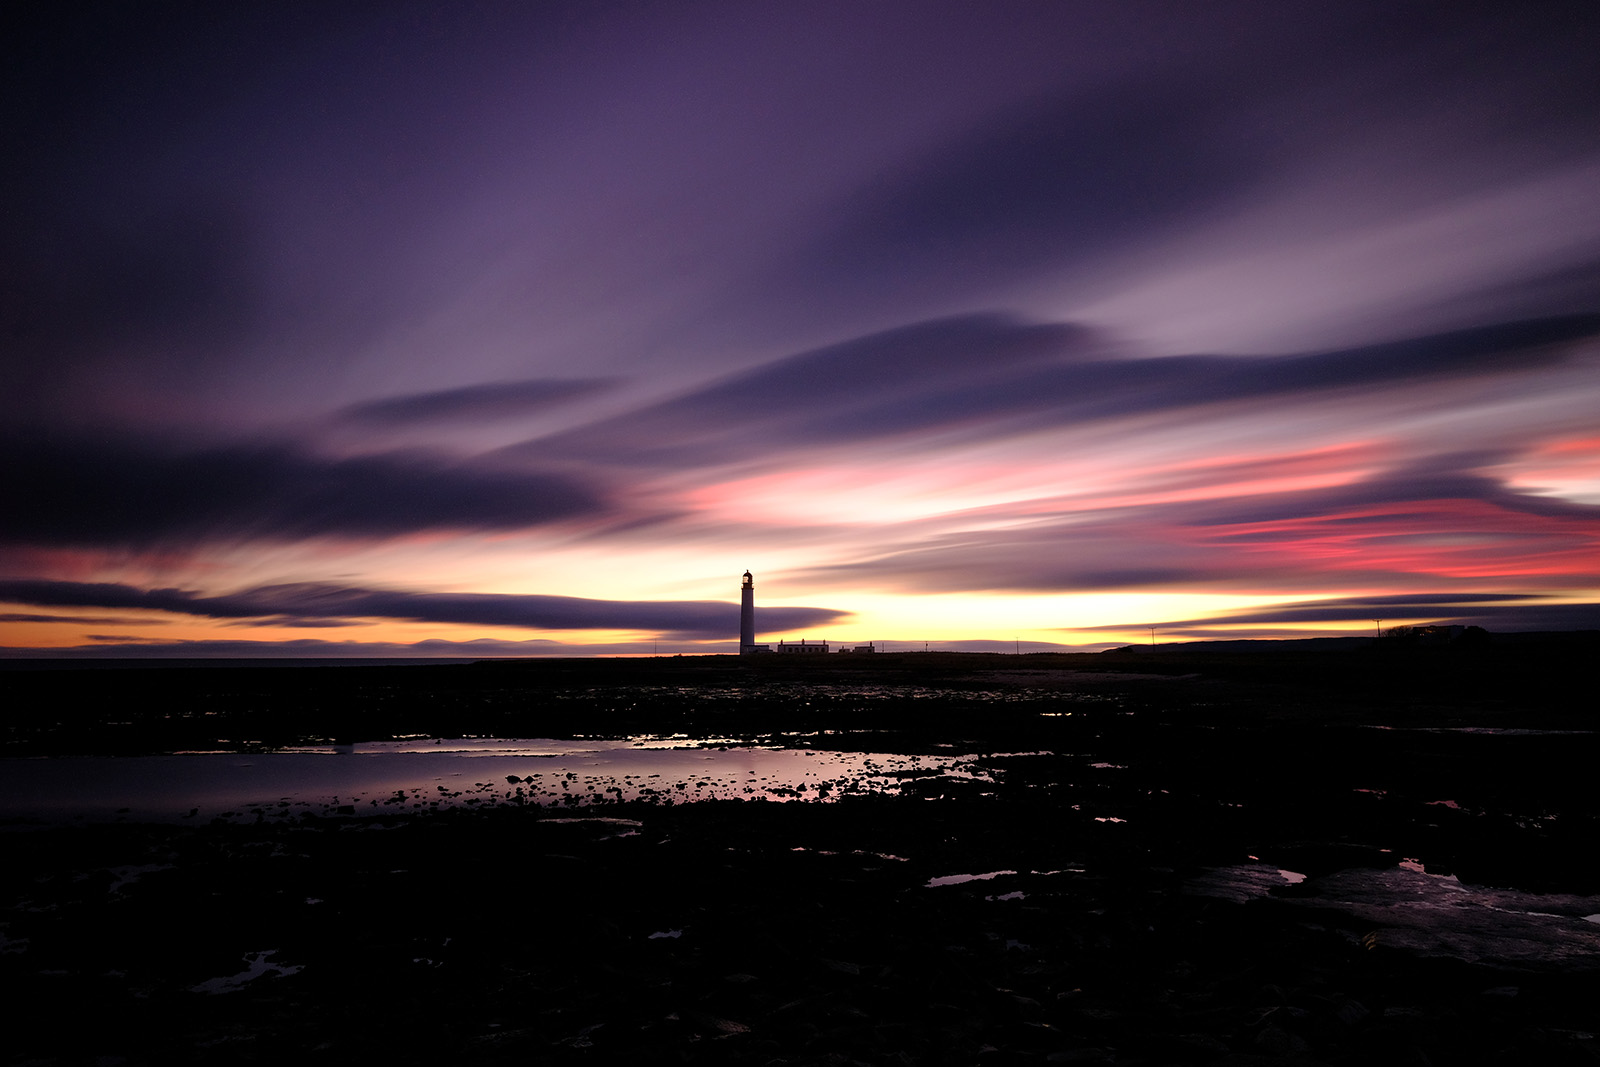 BARNS NESS DAWN -  CLICK HERE TO SELECT AND PURCHASE THIS IMAGE